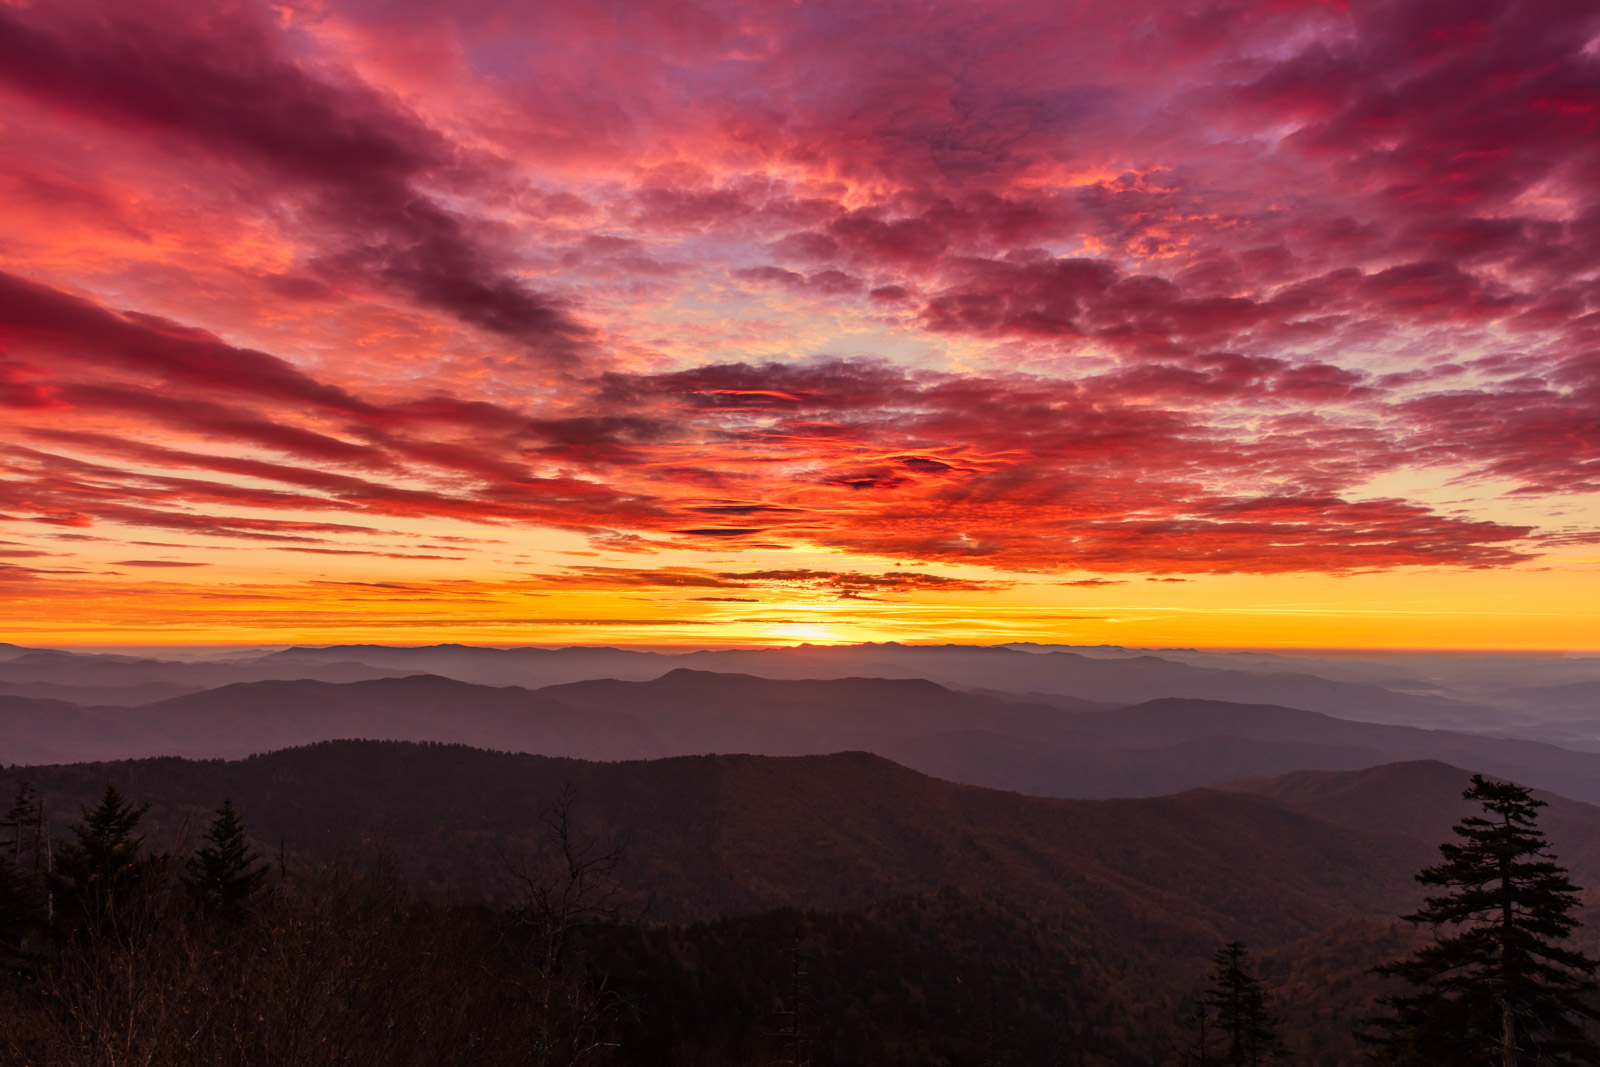 Tennessee, Smoky Mountains, Clingmans Dome, Sunset, limited edition, photograph, fine art, landscape, photo